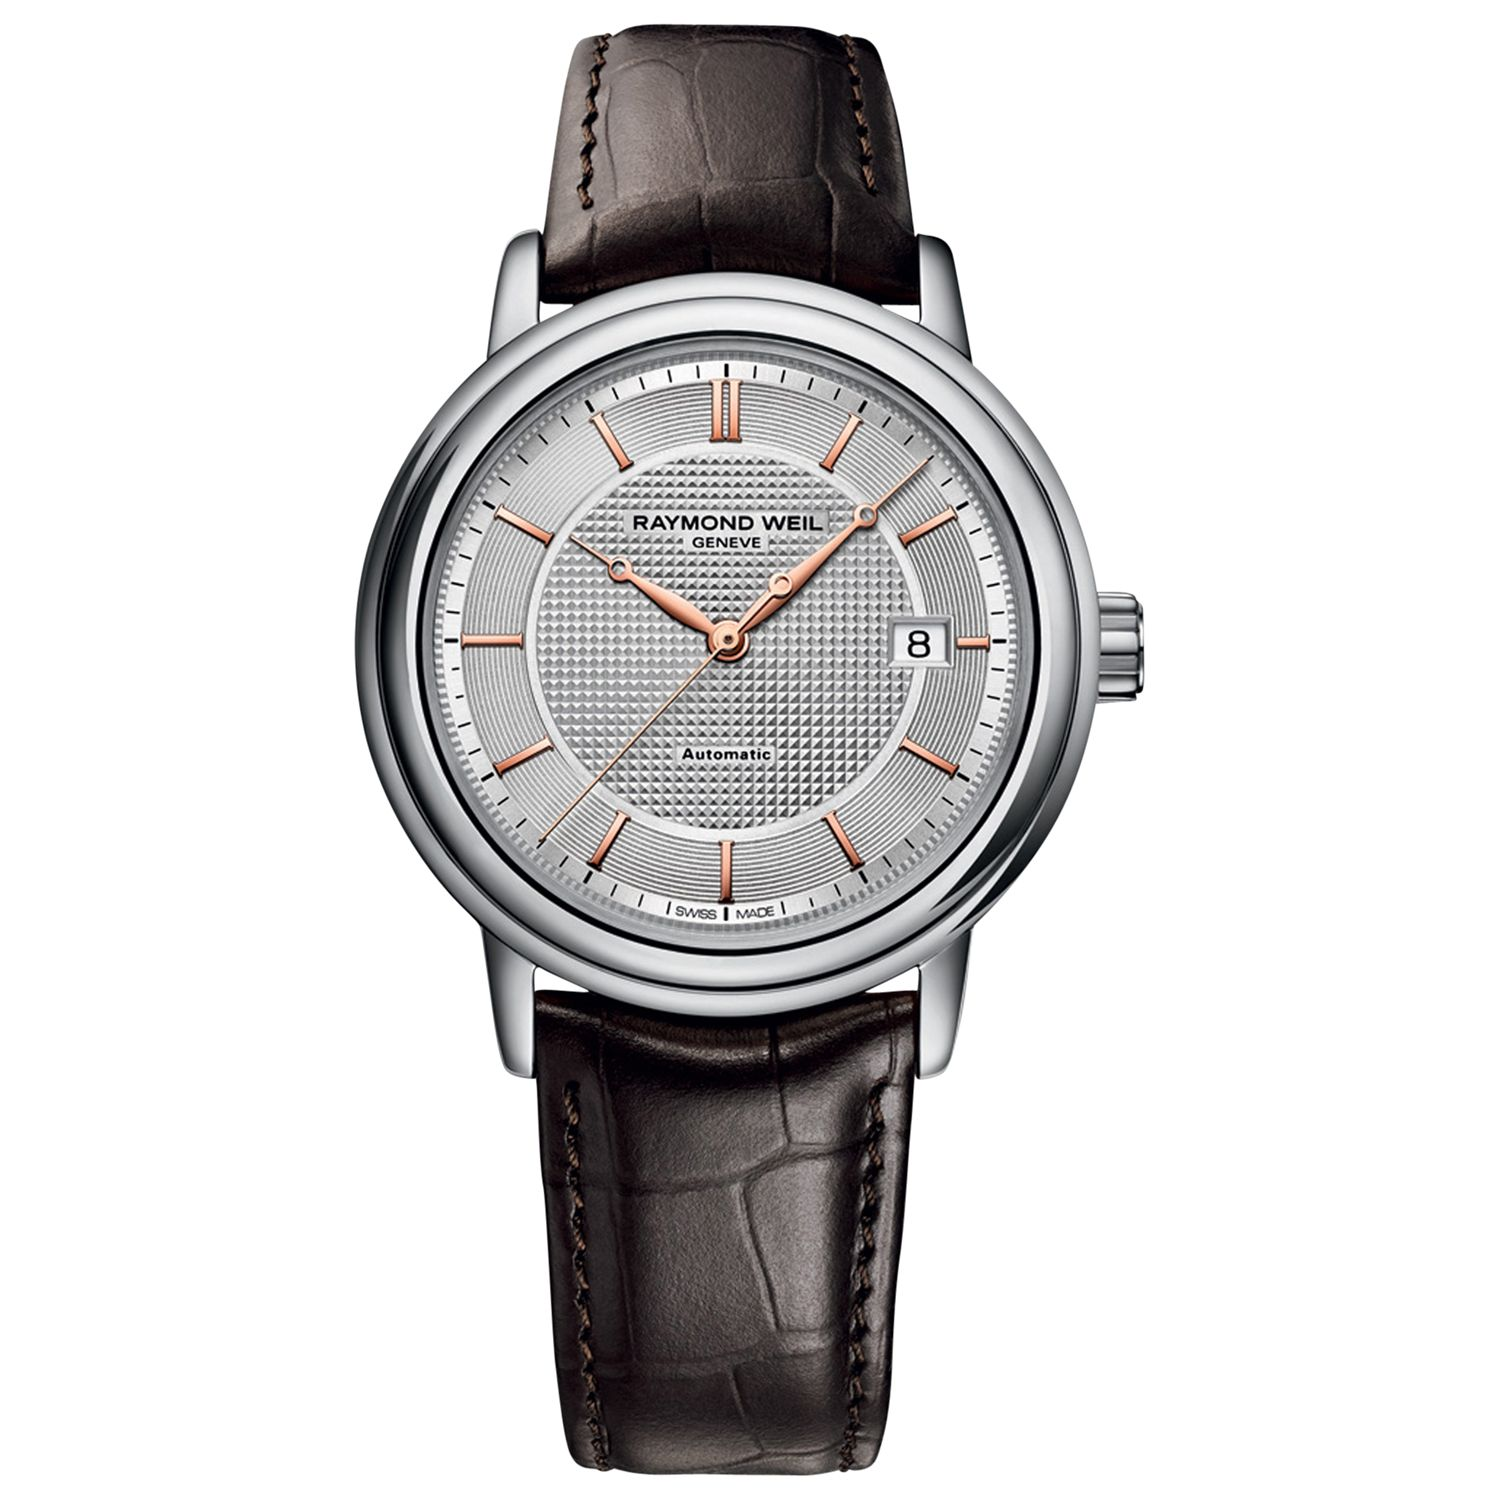 Raymond Weil Raymond Weil 2837-SL565001 Men's Maestro Automatic Leather Strap Watch, Dark Brown/Silver